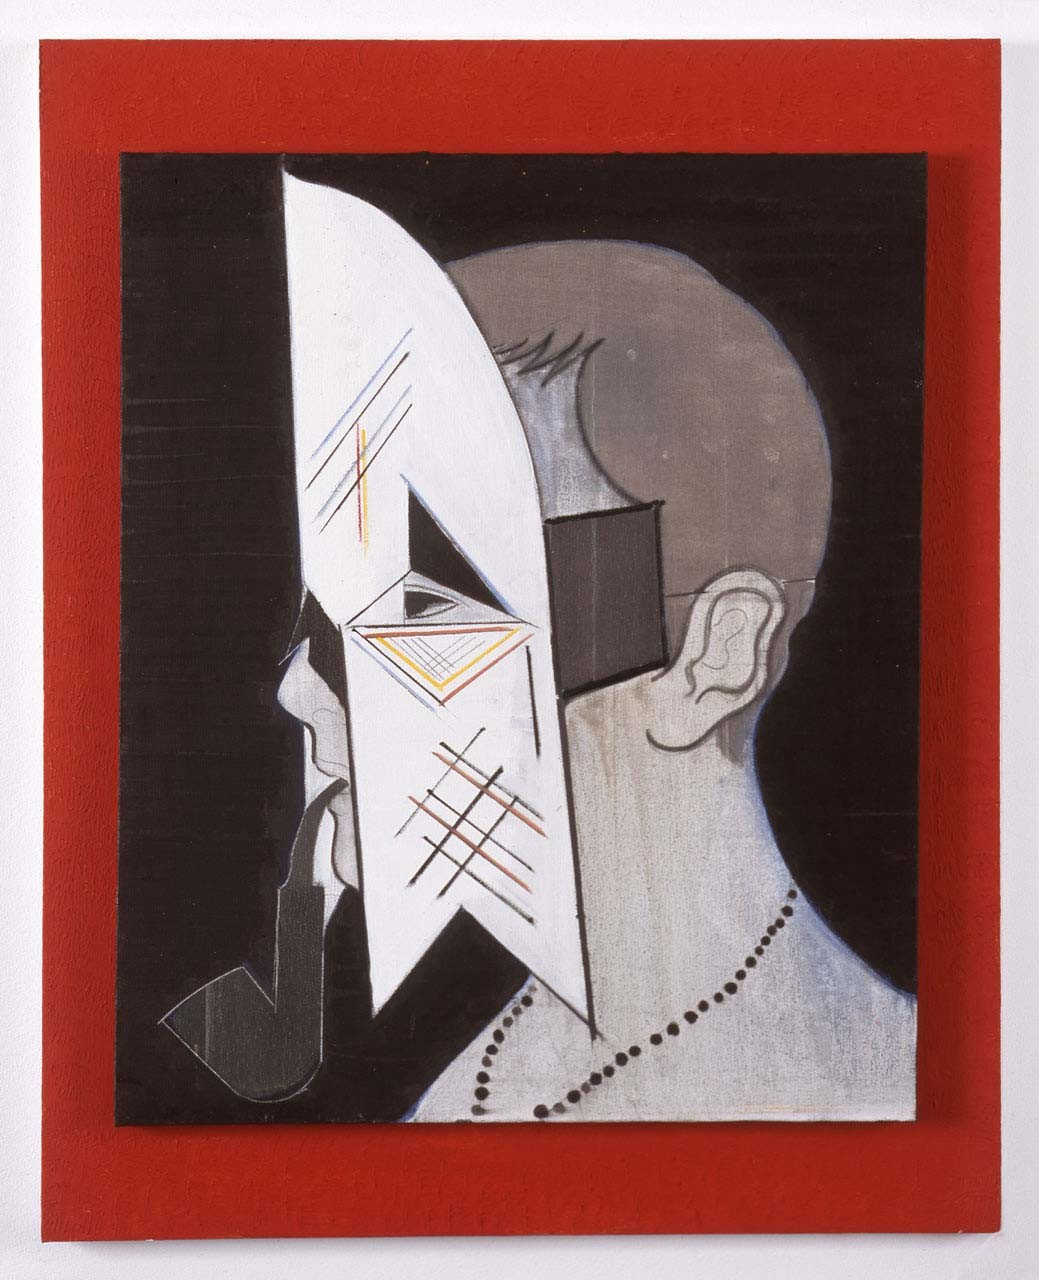 "<div class=""artwork_caption""><p>Christian with Mask and Pipe, 2010</p></div>"